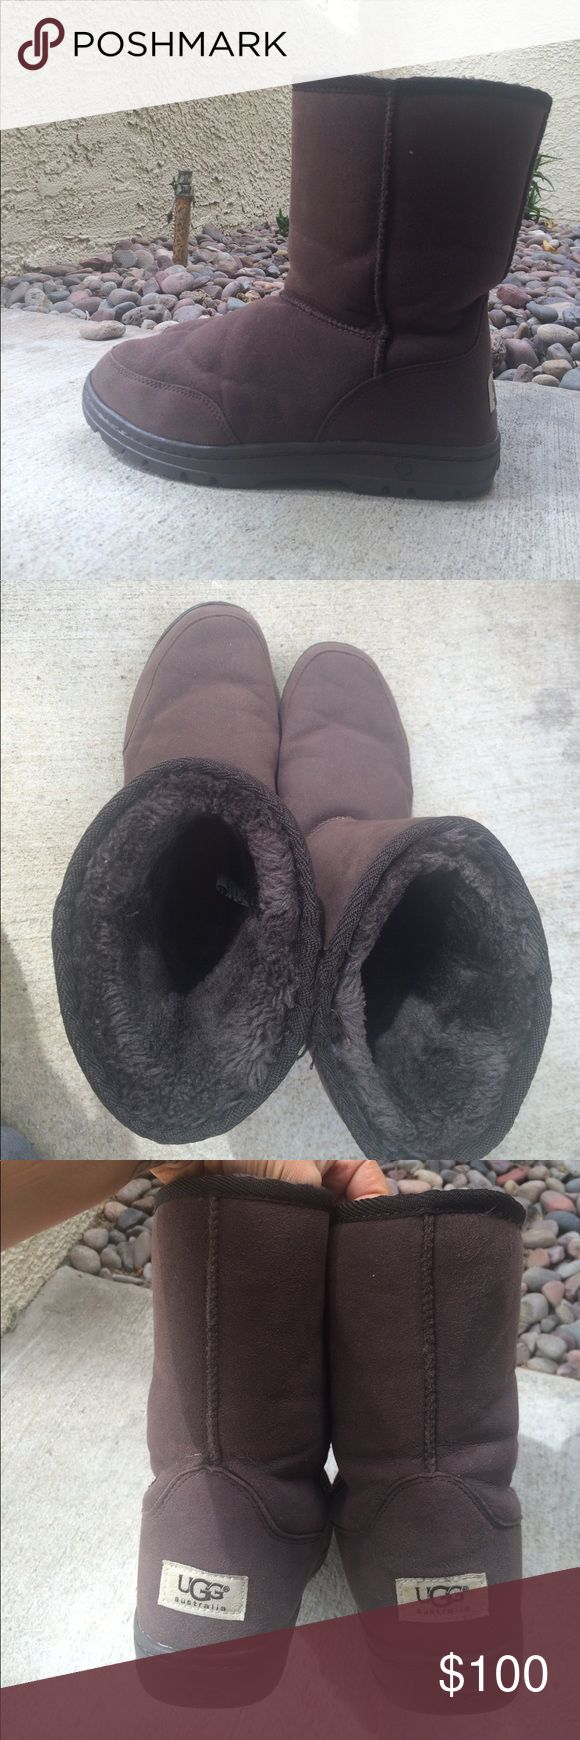 *Make Offer* UGG Classic Short Brown Outdoor Boot Classic short UGG boot with the outdoor sole/bottoms. Rarely worn outside and never when raining. Used them as house slippers. Very good condition. Size is 7W. I am a 7.5 and they fit me perfectly. Make an offer. UGG Shoes Winter & Rain Boots